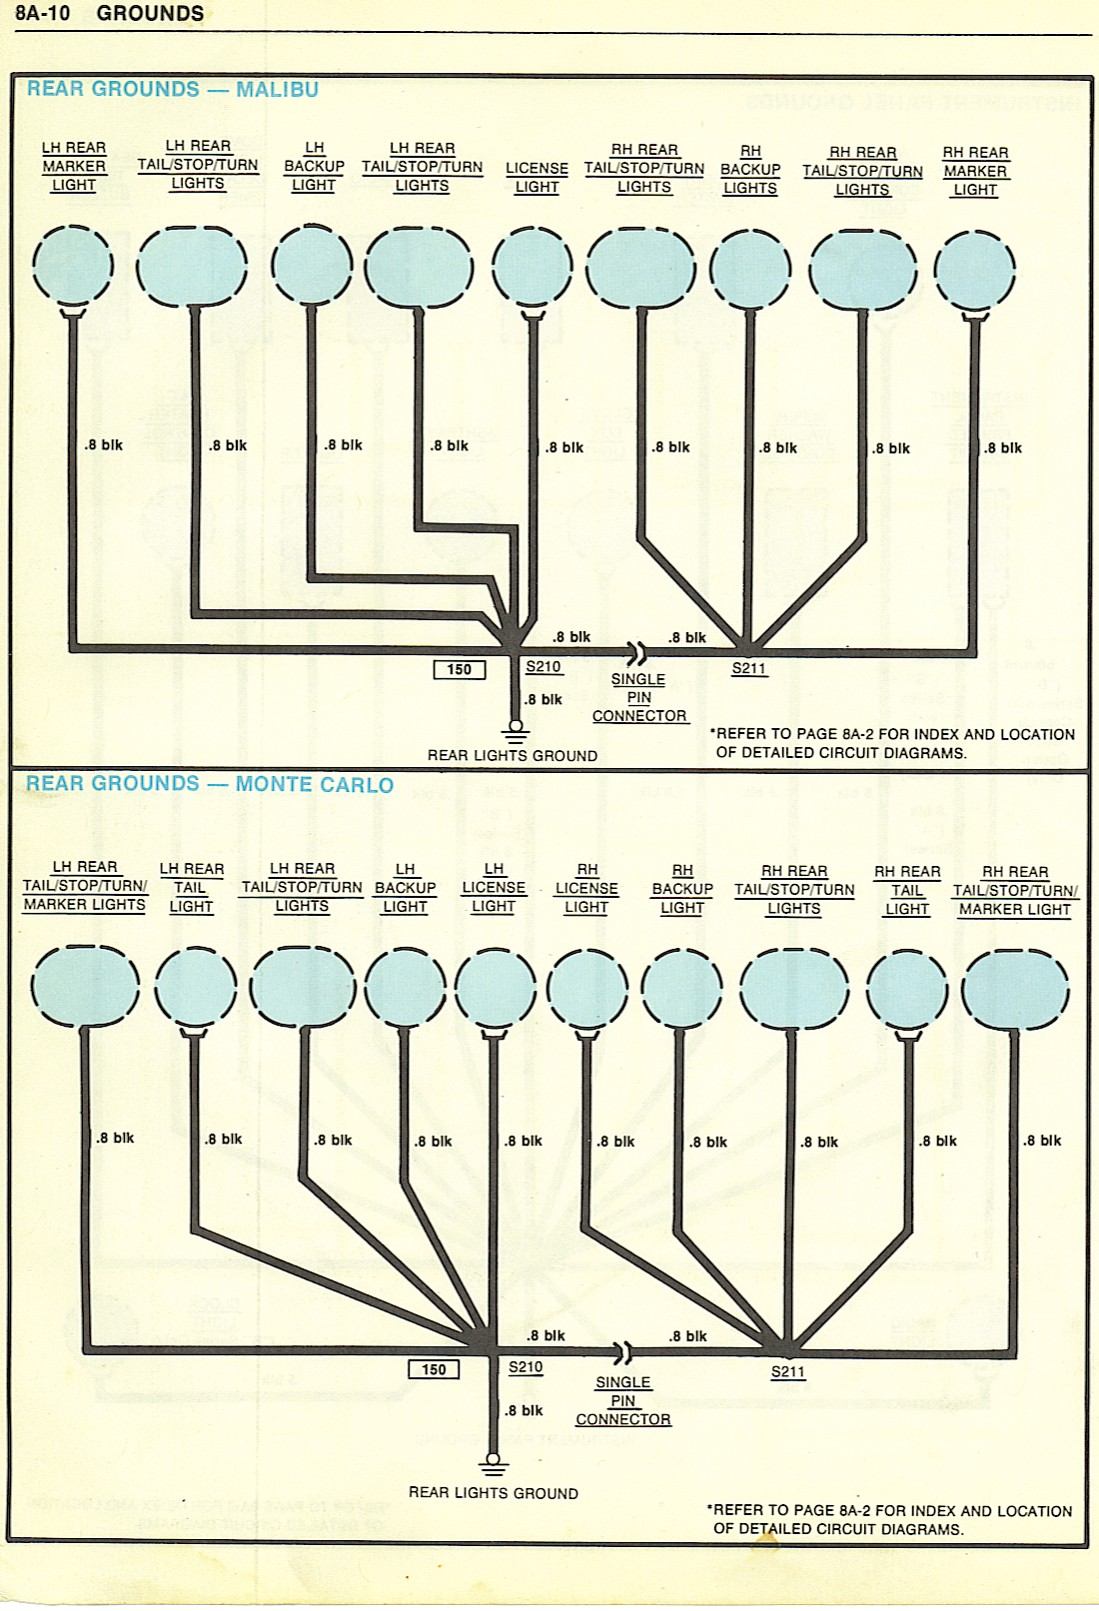 hight resolution of 1999 monte carlo wiring schematic wiring library rh 81 bloxhuette de 1970 monte carlo wiring diagram